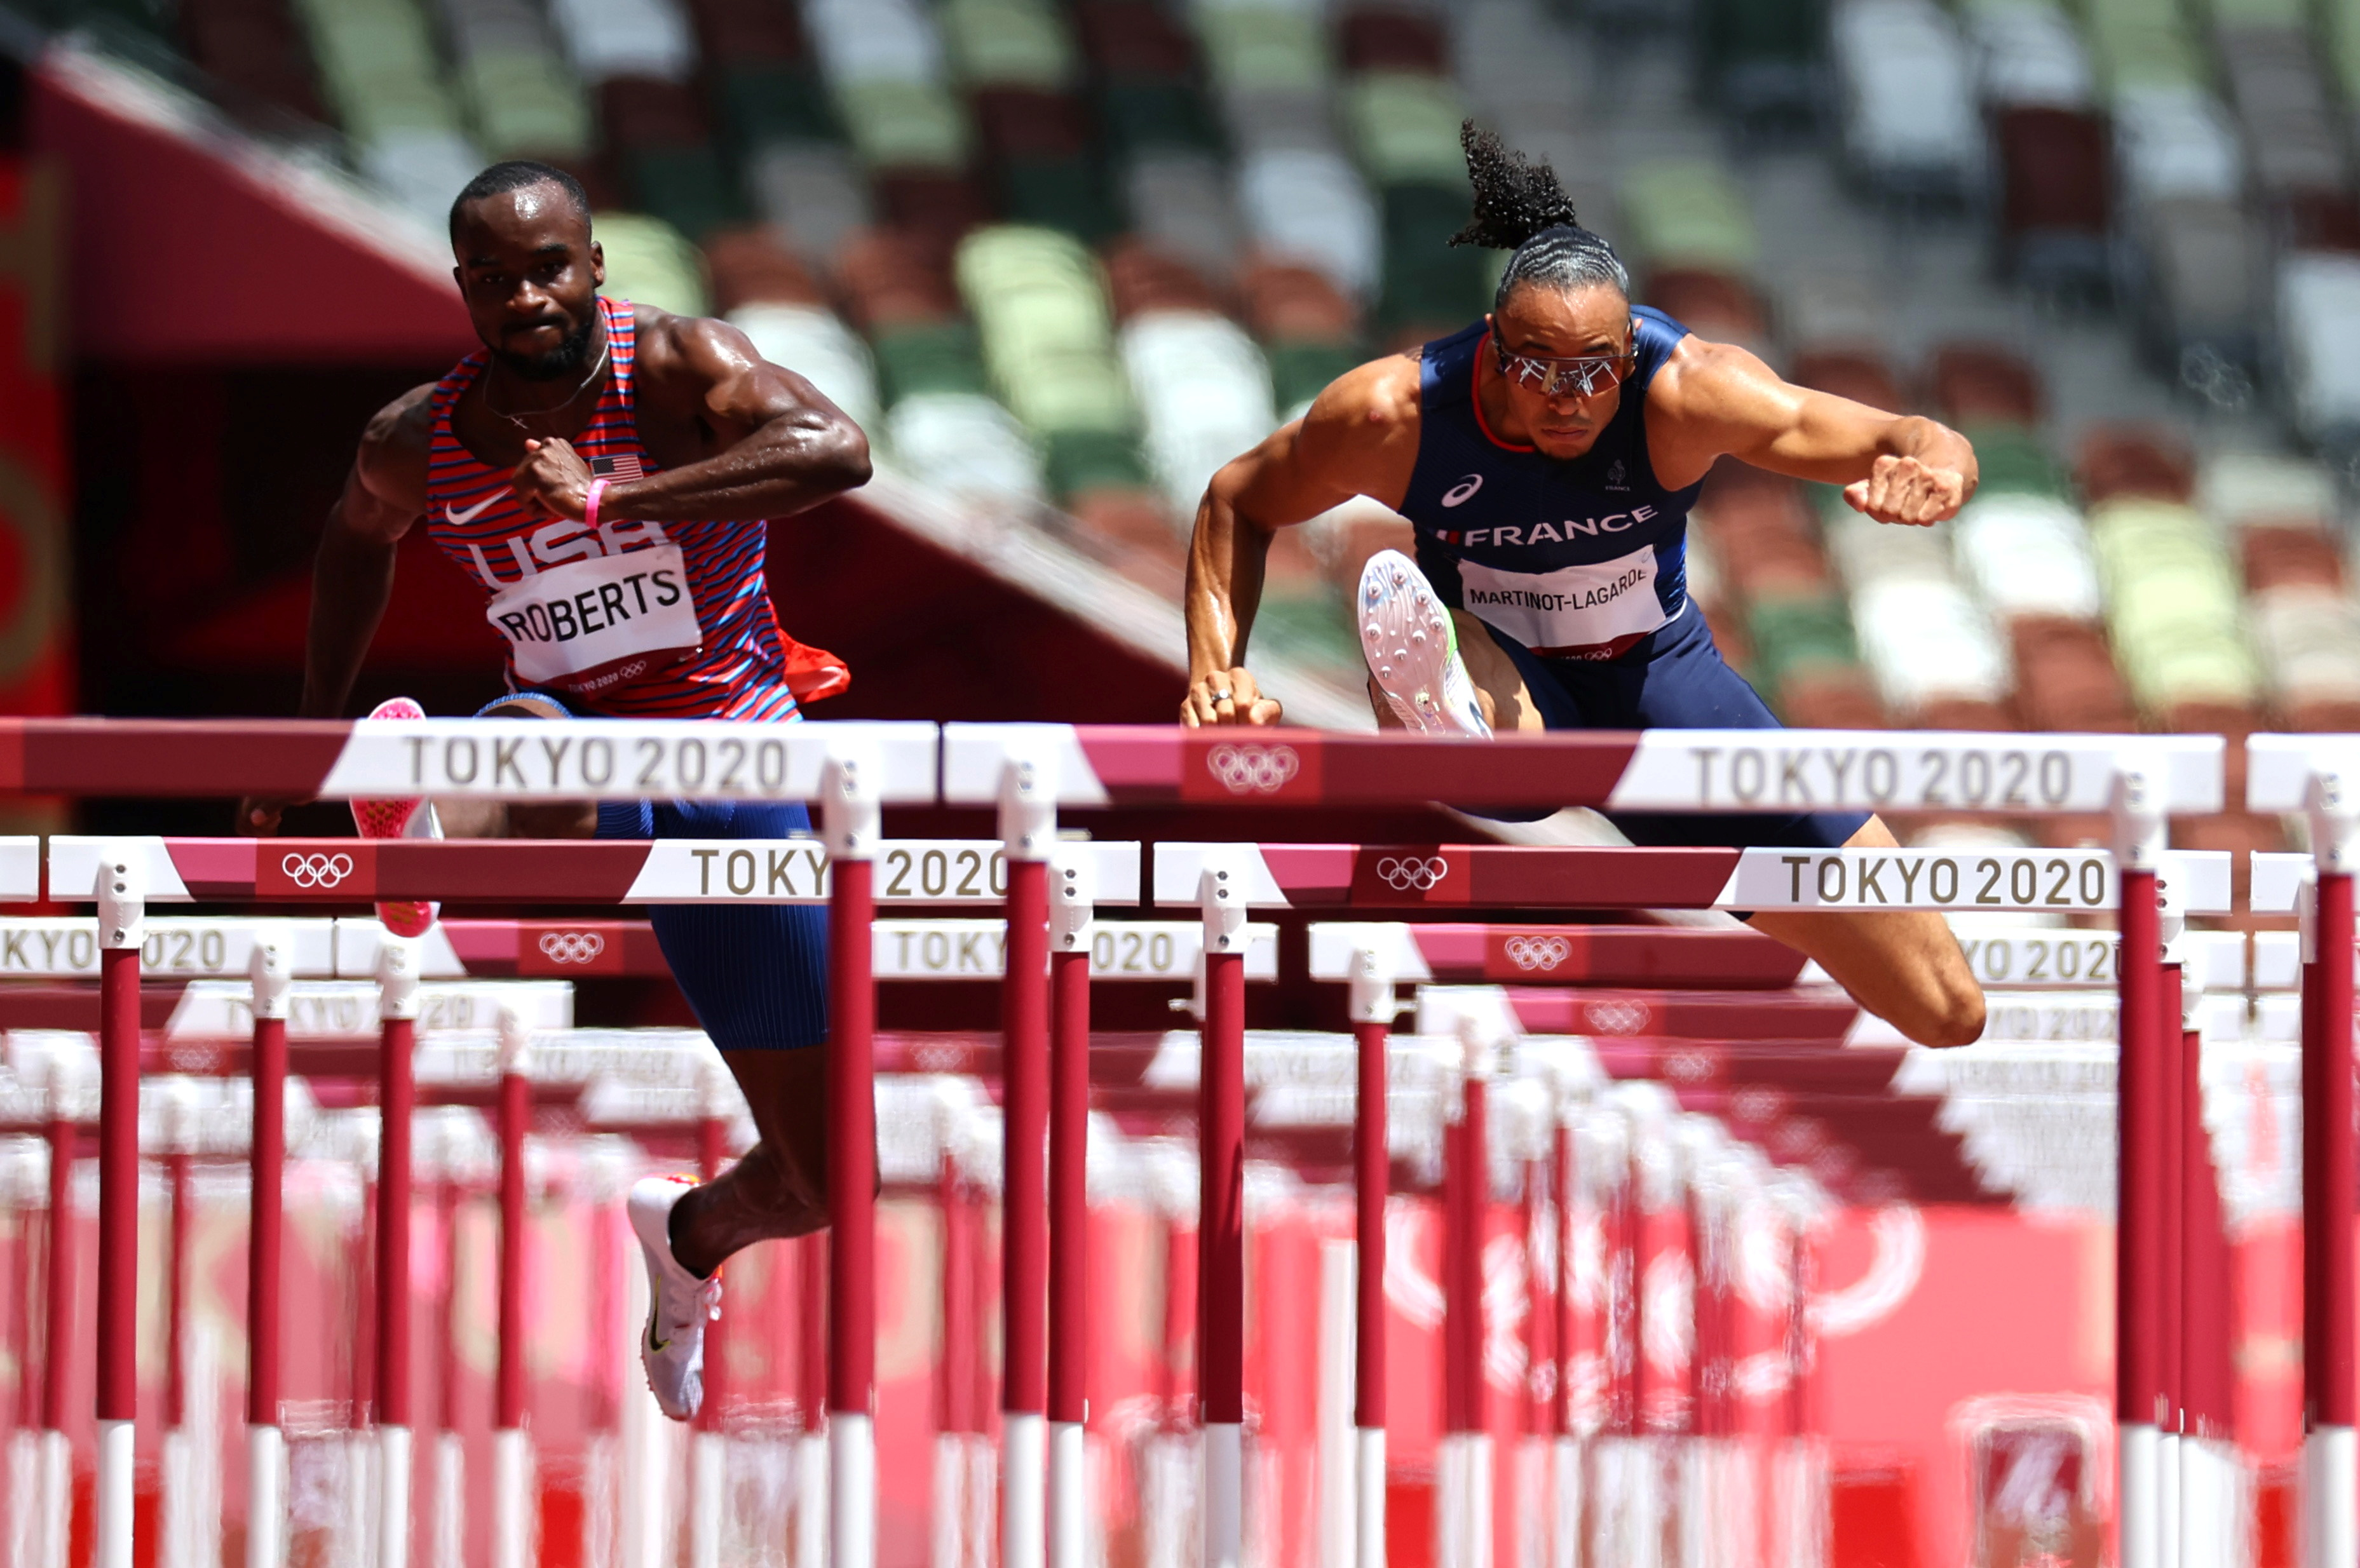 Tokyo 2020 Olympics - Athletics - Men's 110m Hurdles - Semifinal - Olympic Stadium, Tokyo, Japan - August 4, 2021. Pascal Martinot-Lagarde of France and Daniel Roberts of the United States in action in Semifinal 1 REUTERS/Lucy Nicholson     TPX IMAGES OF THE DAY - SP1EH8405Y0Y9